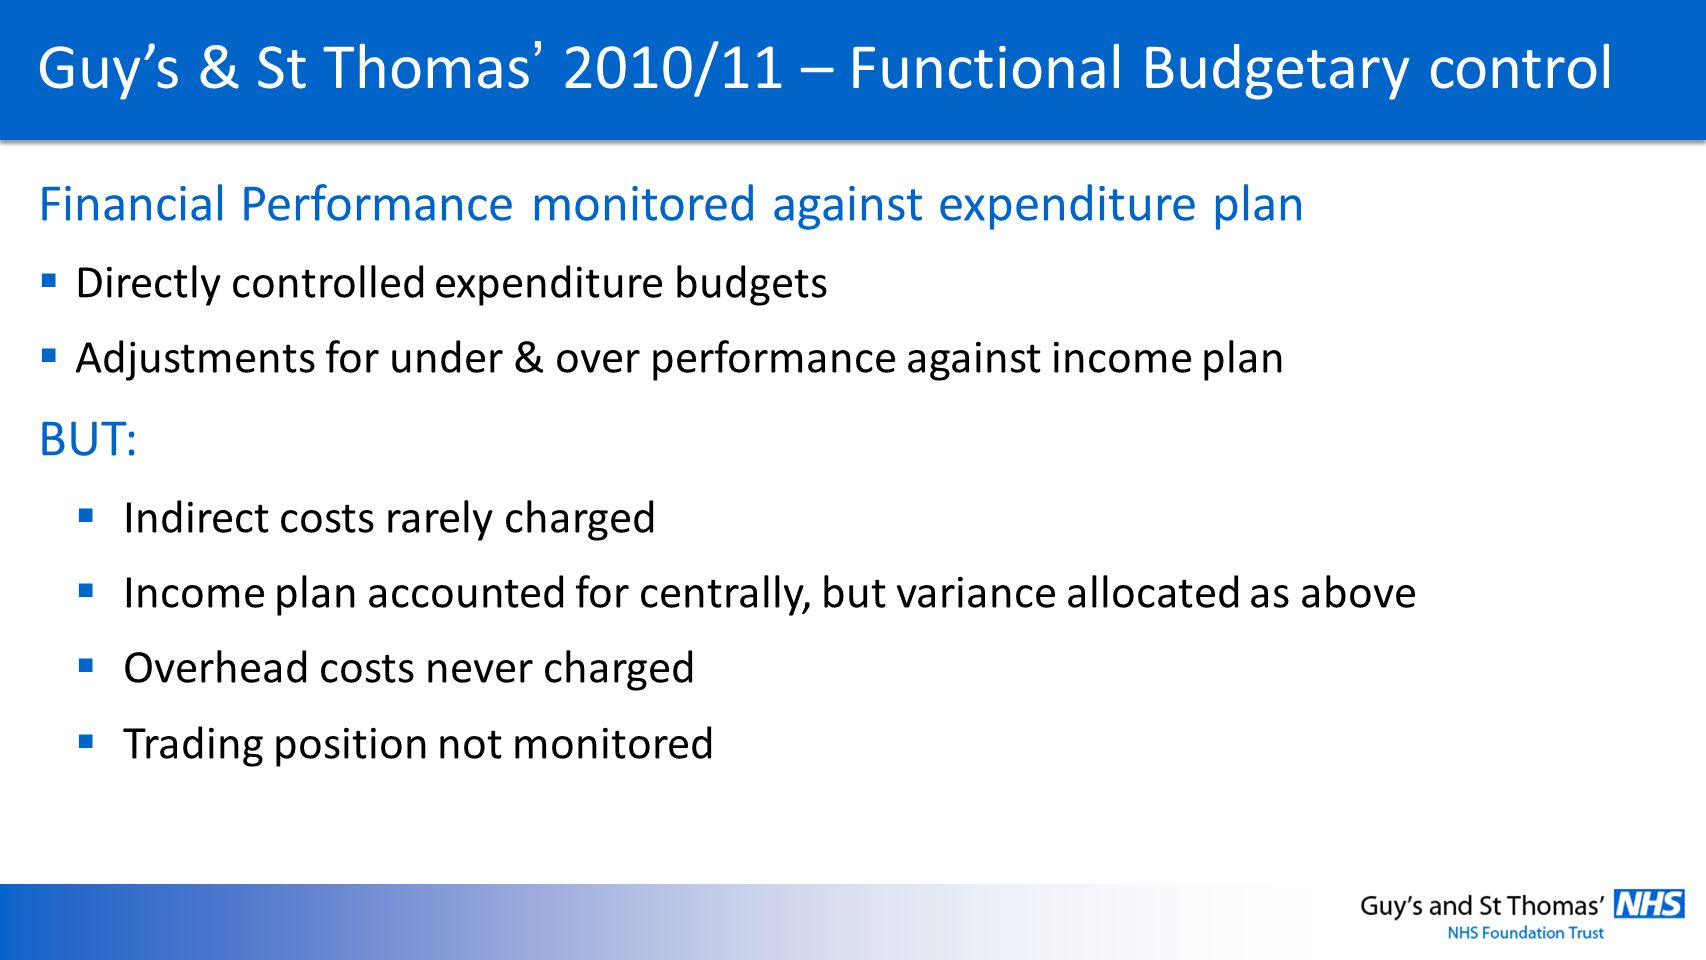 Guy's & St Thomas' 2010/11 – Functional Budgetary control